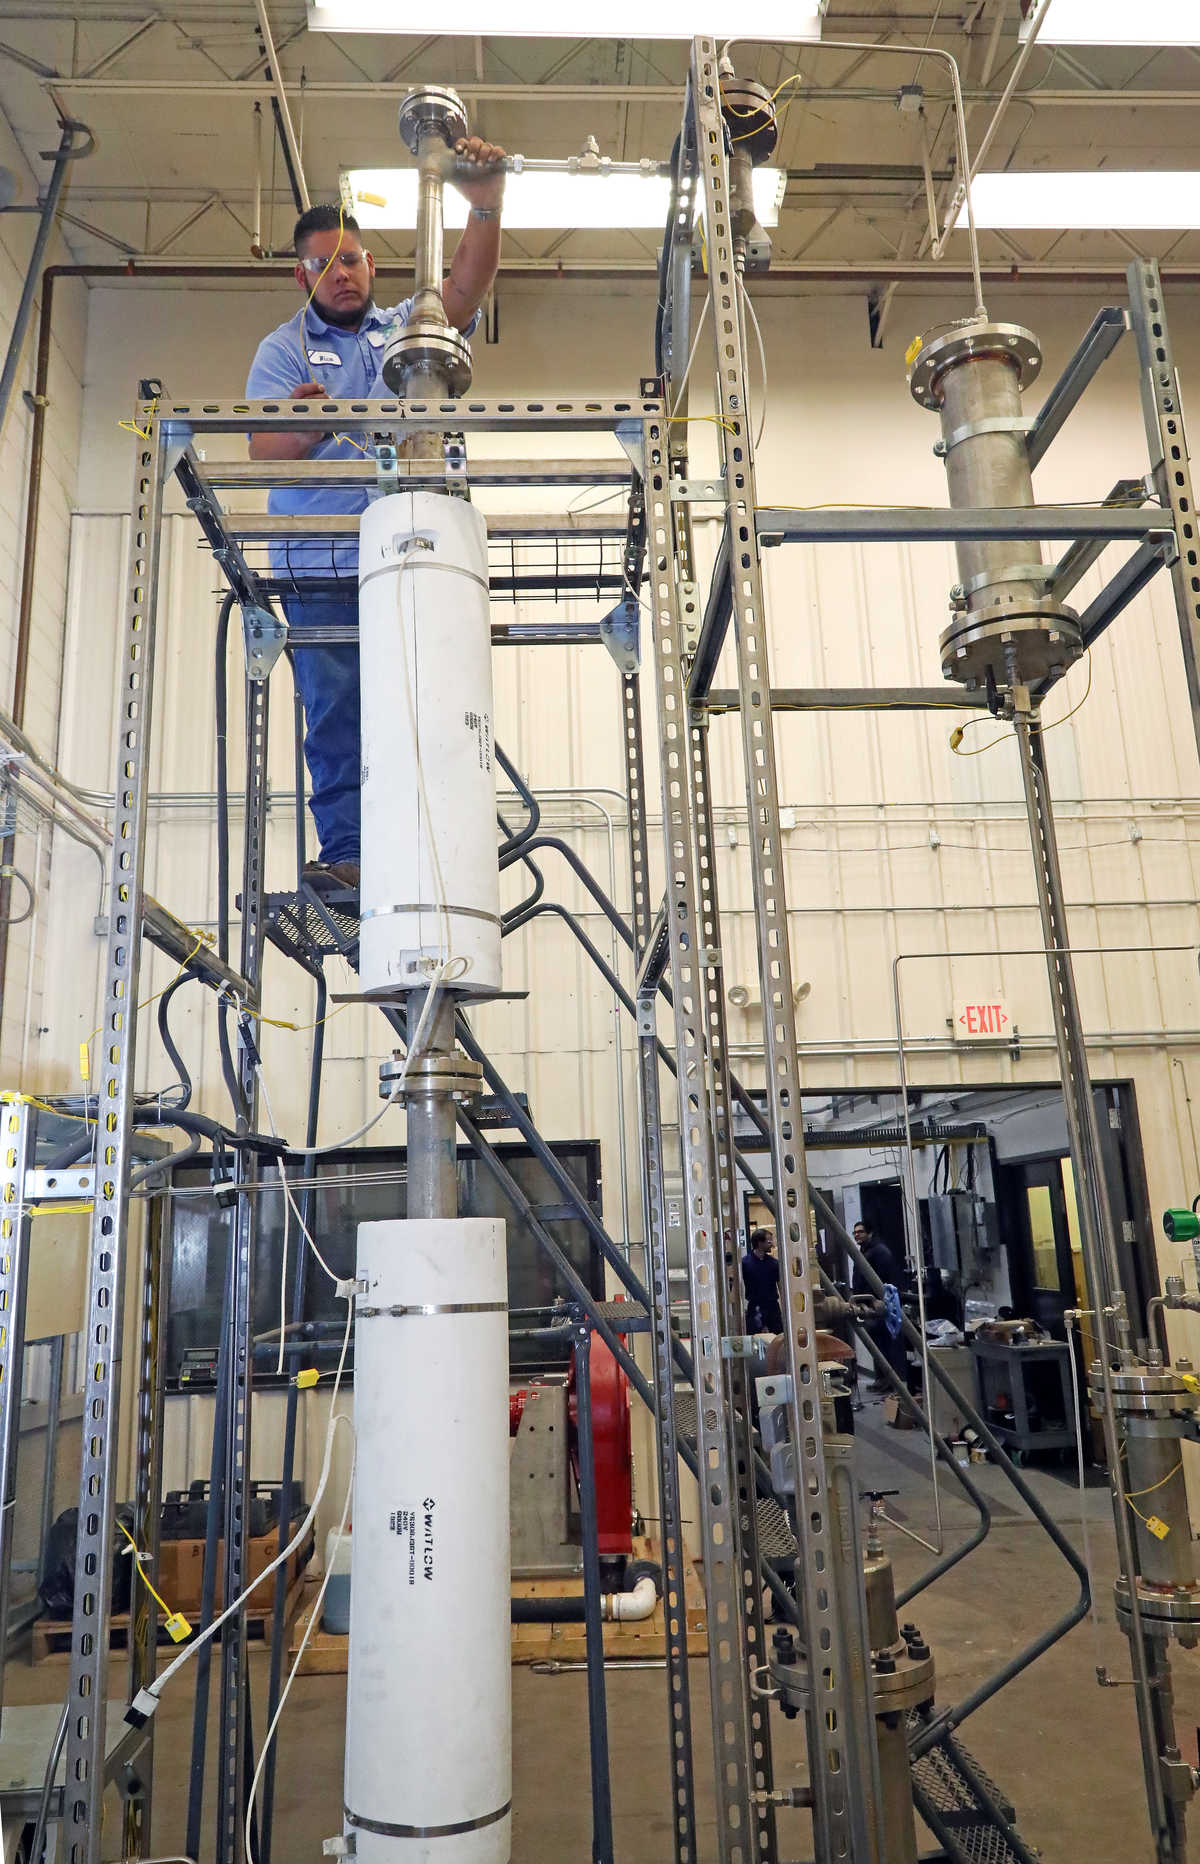 An SwRI engineer setting up equipment for fluidized bed pyrolysis